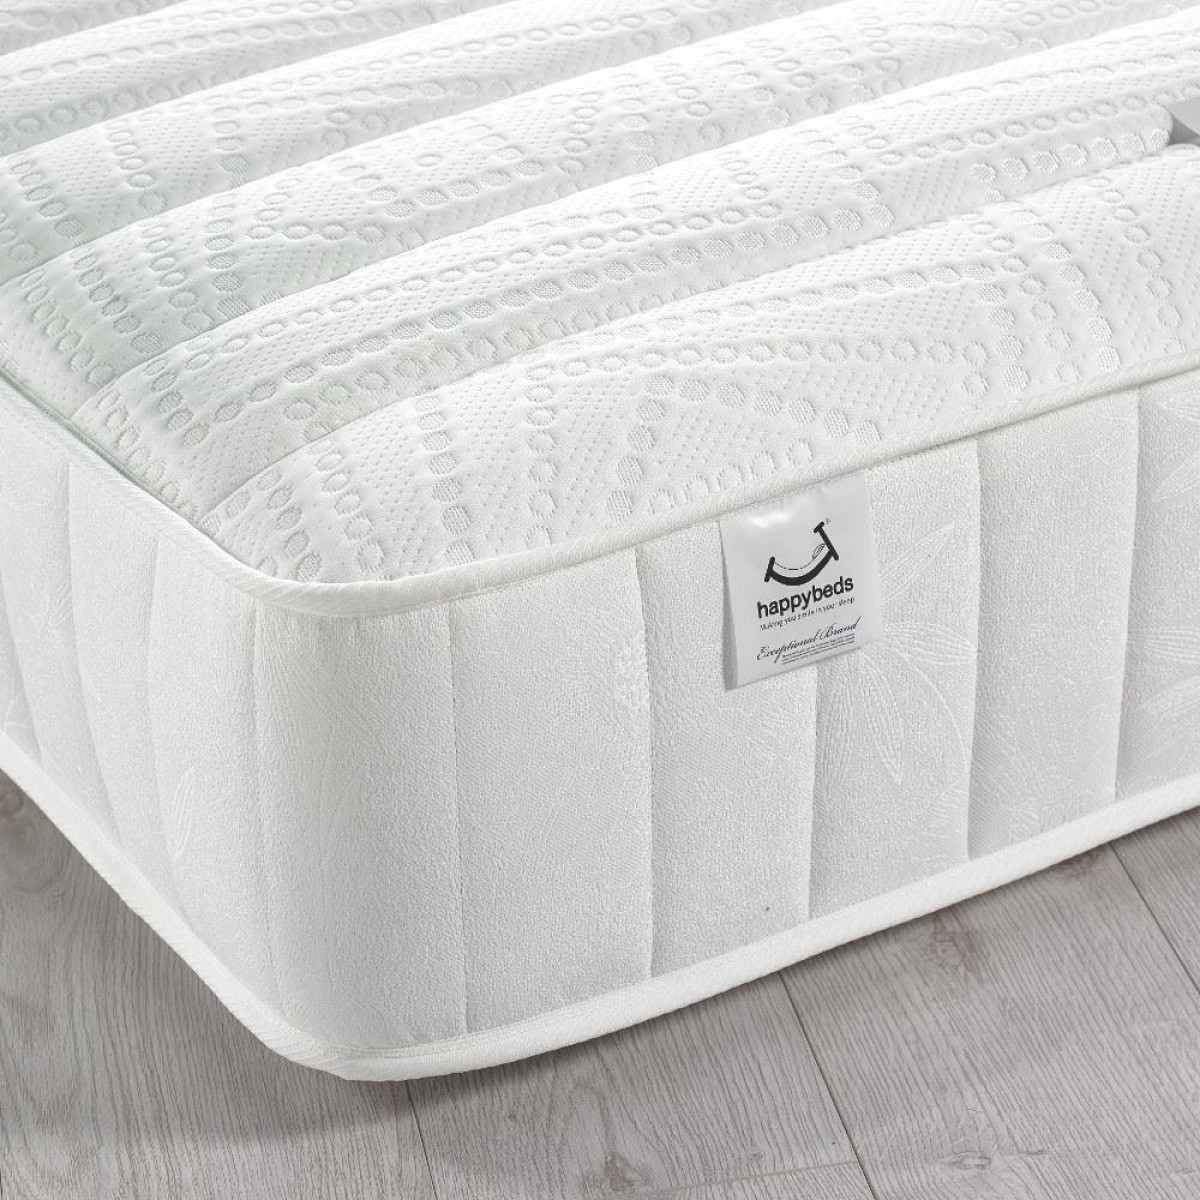 Single Pocket Sprung Memory Foam Mattress Balmoral 3500 Pocket Sprung Memory Foam Mattress